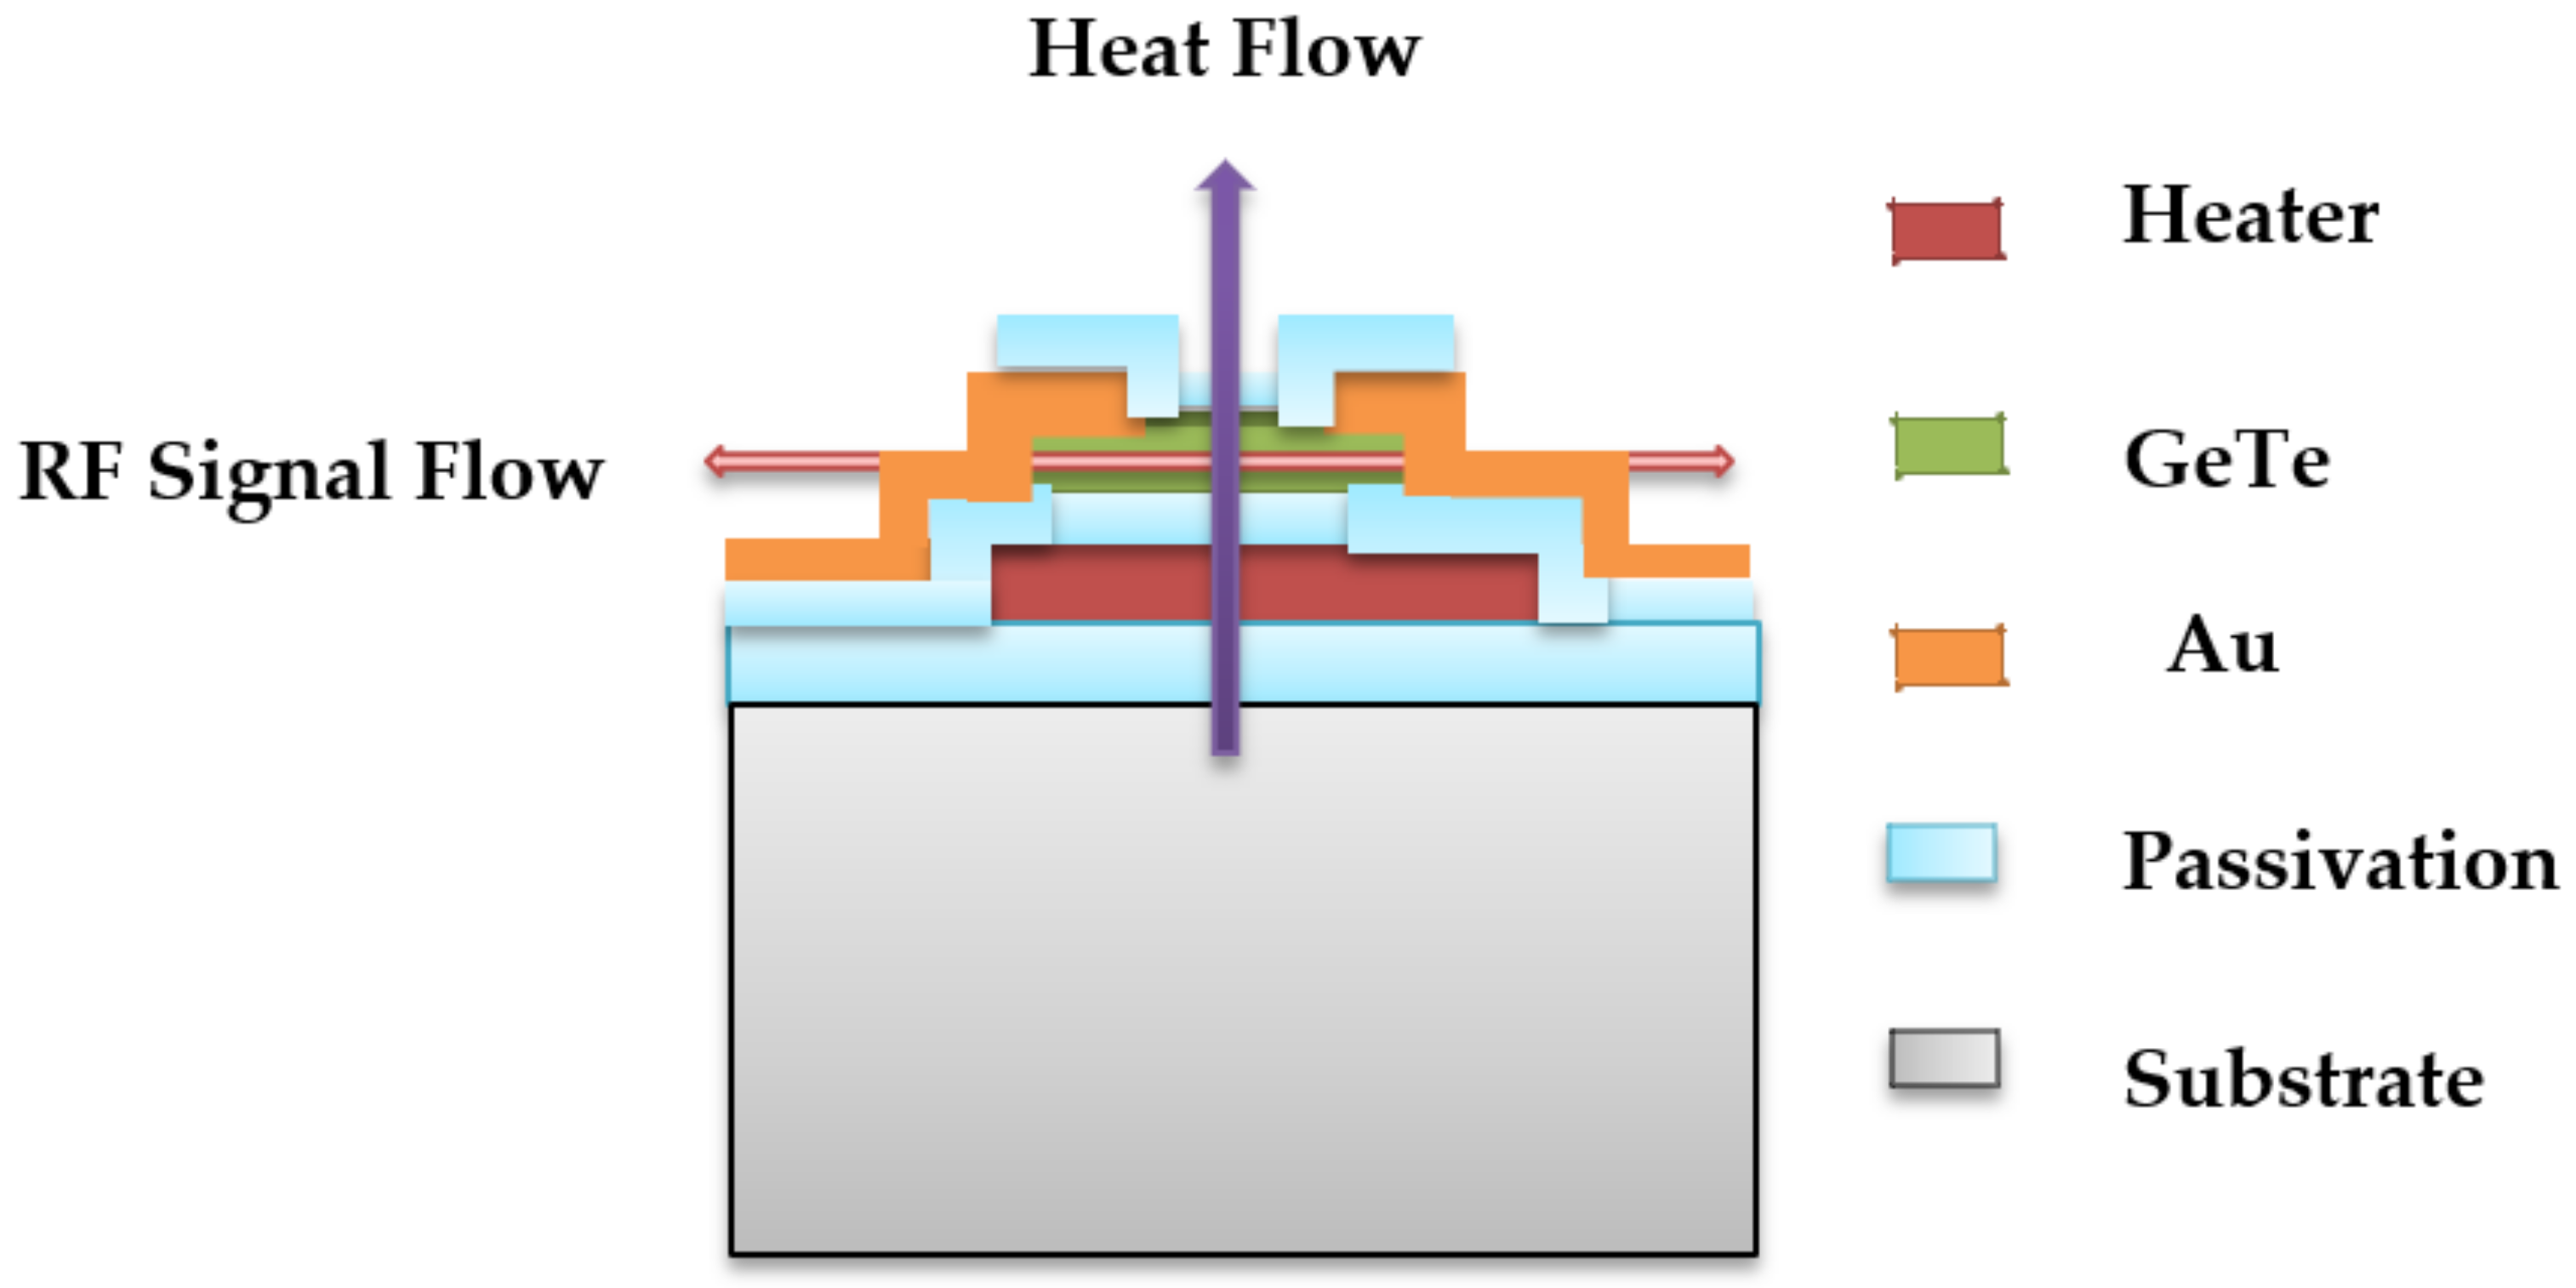 Technologies Free Full Text Performance Comparison Of Phase Radio Waves Diagram Showing Flow No